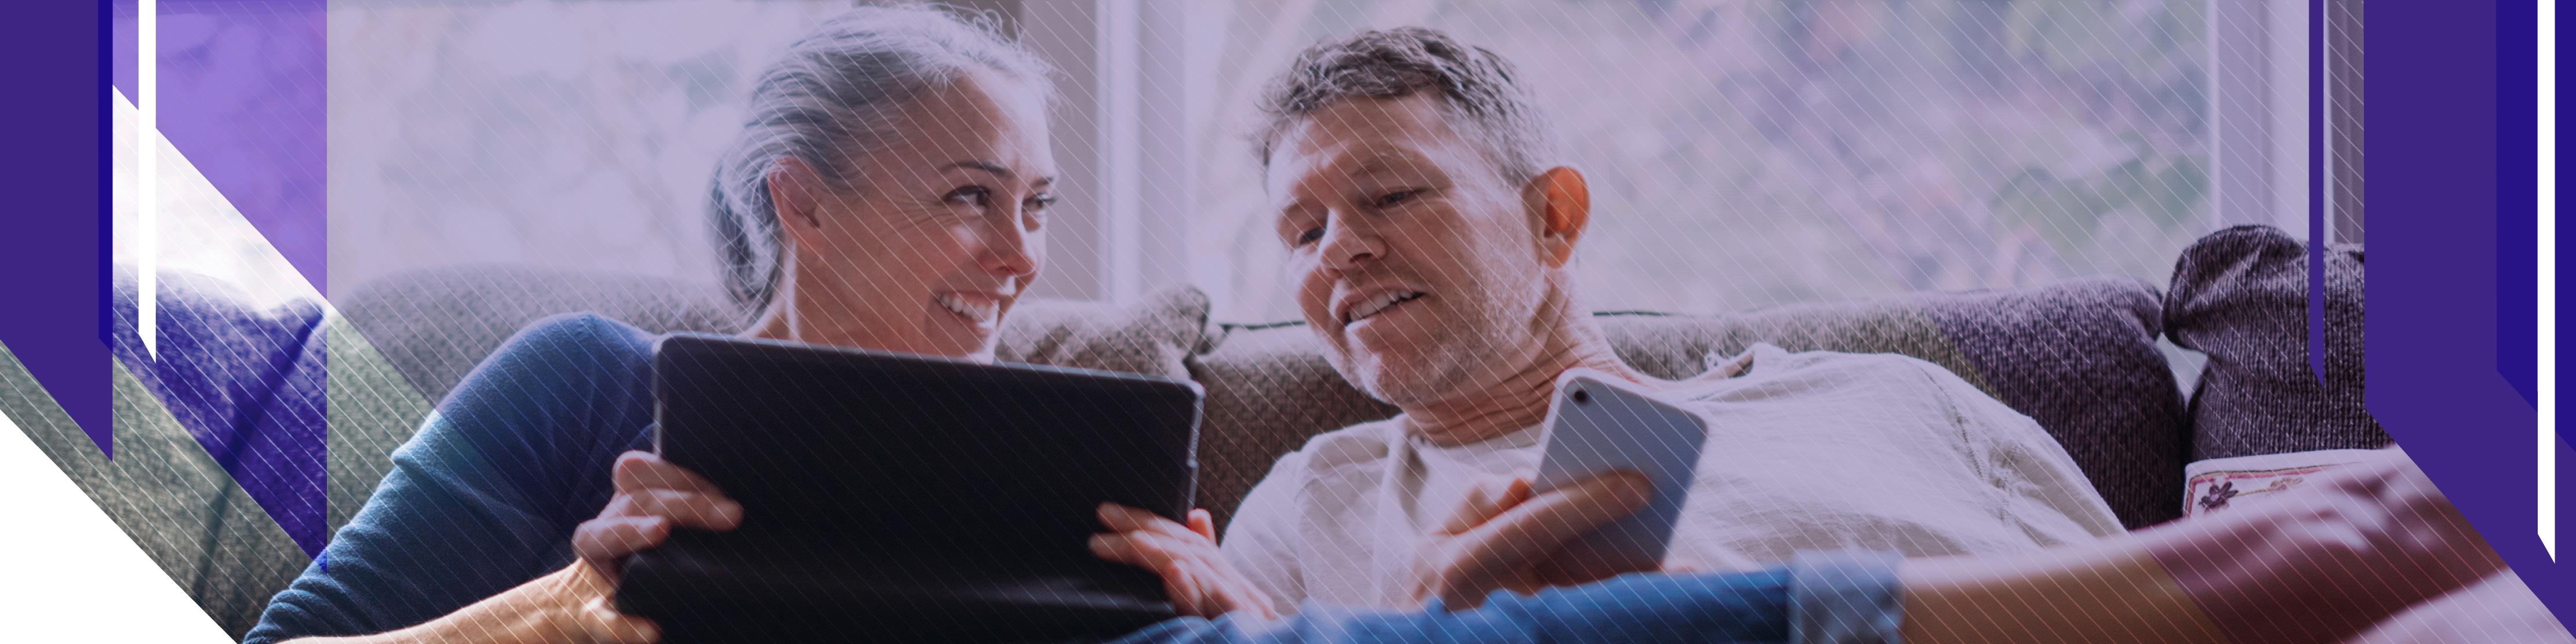 Couple sitting on sofa looking at tablet